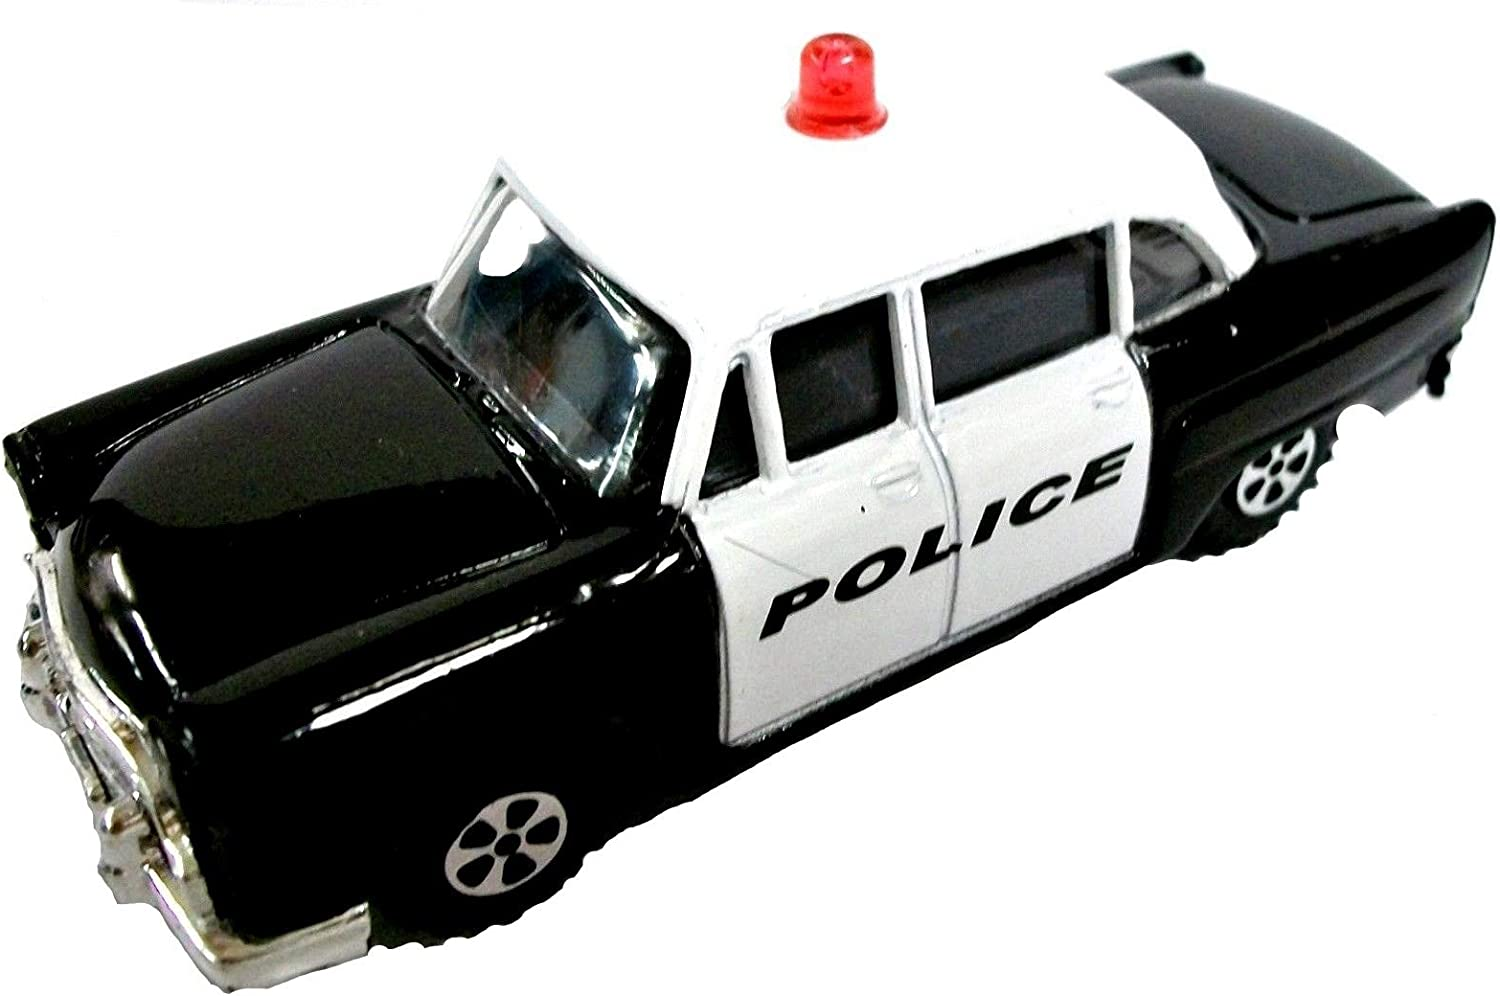 Sales of SALE items San Jose Mall from new works Police Car Die Cast Pencil Metal Sharpener Collectible